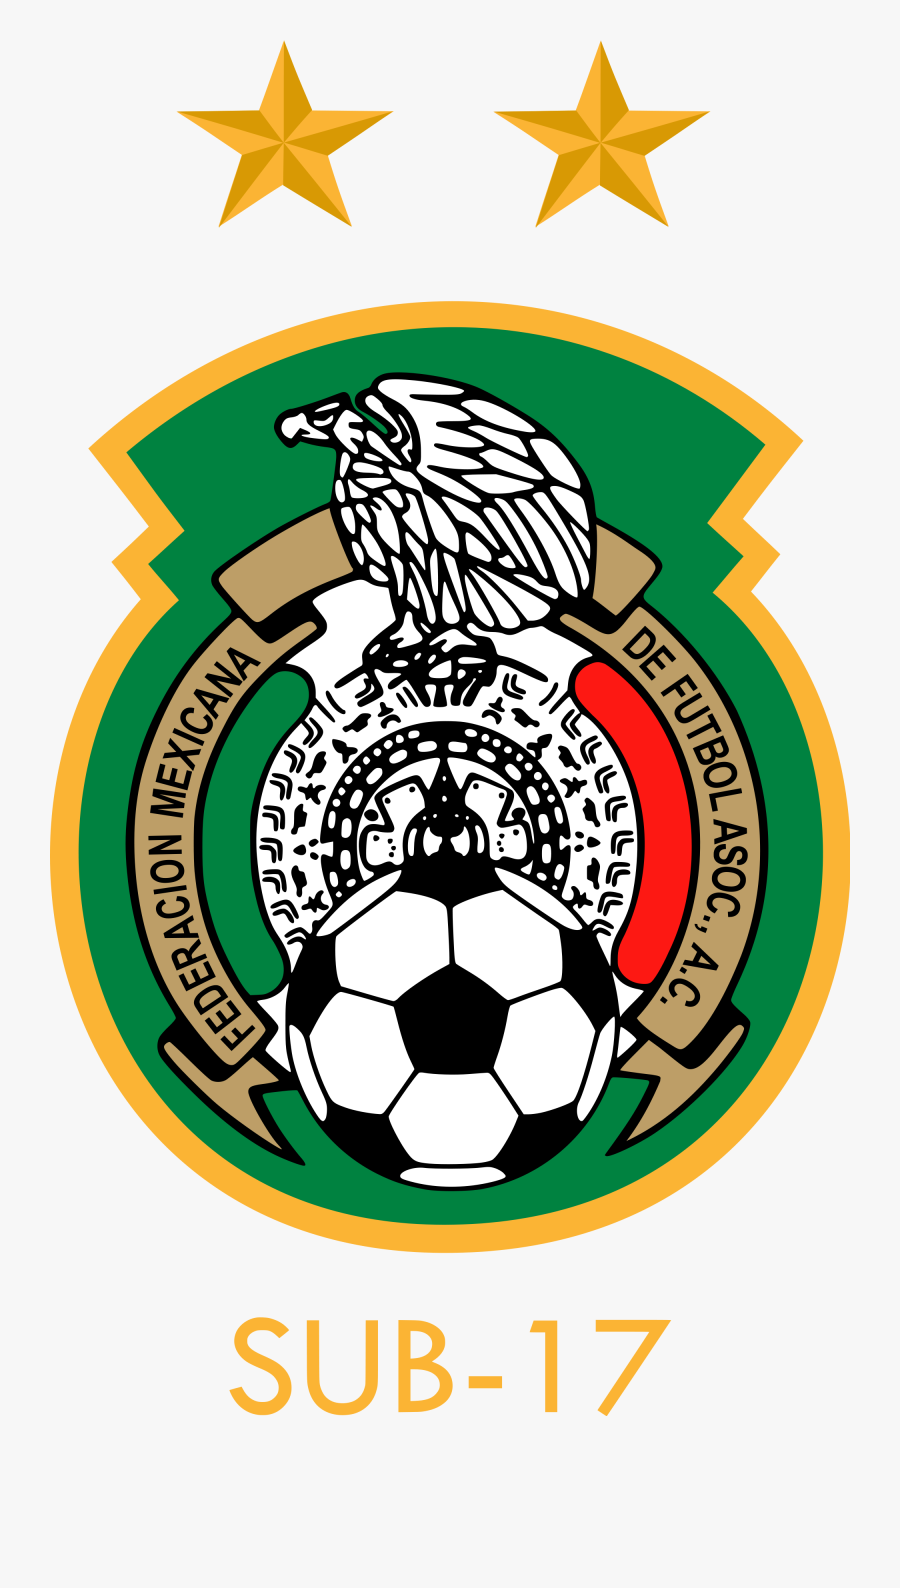 Clip Art Mexico Soccer Team Logos - Logo Dream League Soccer 2018 Mexico, Transparent Clipart